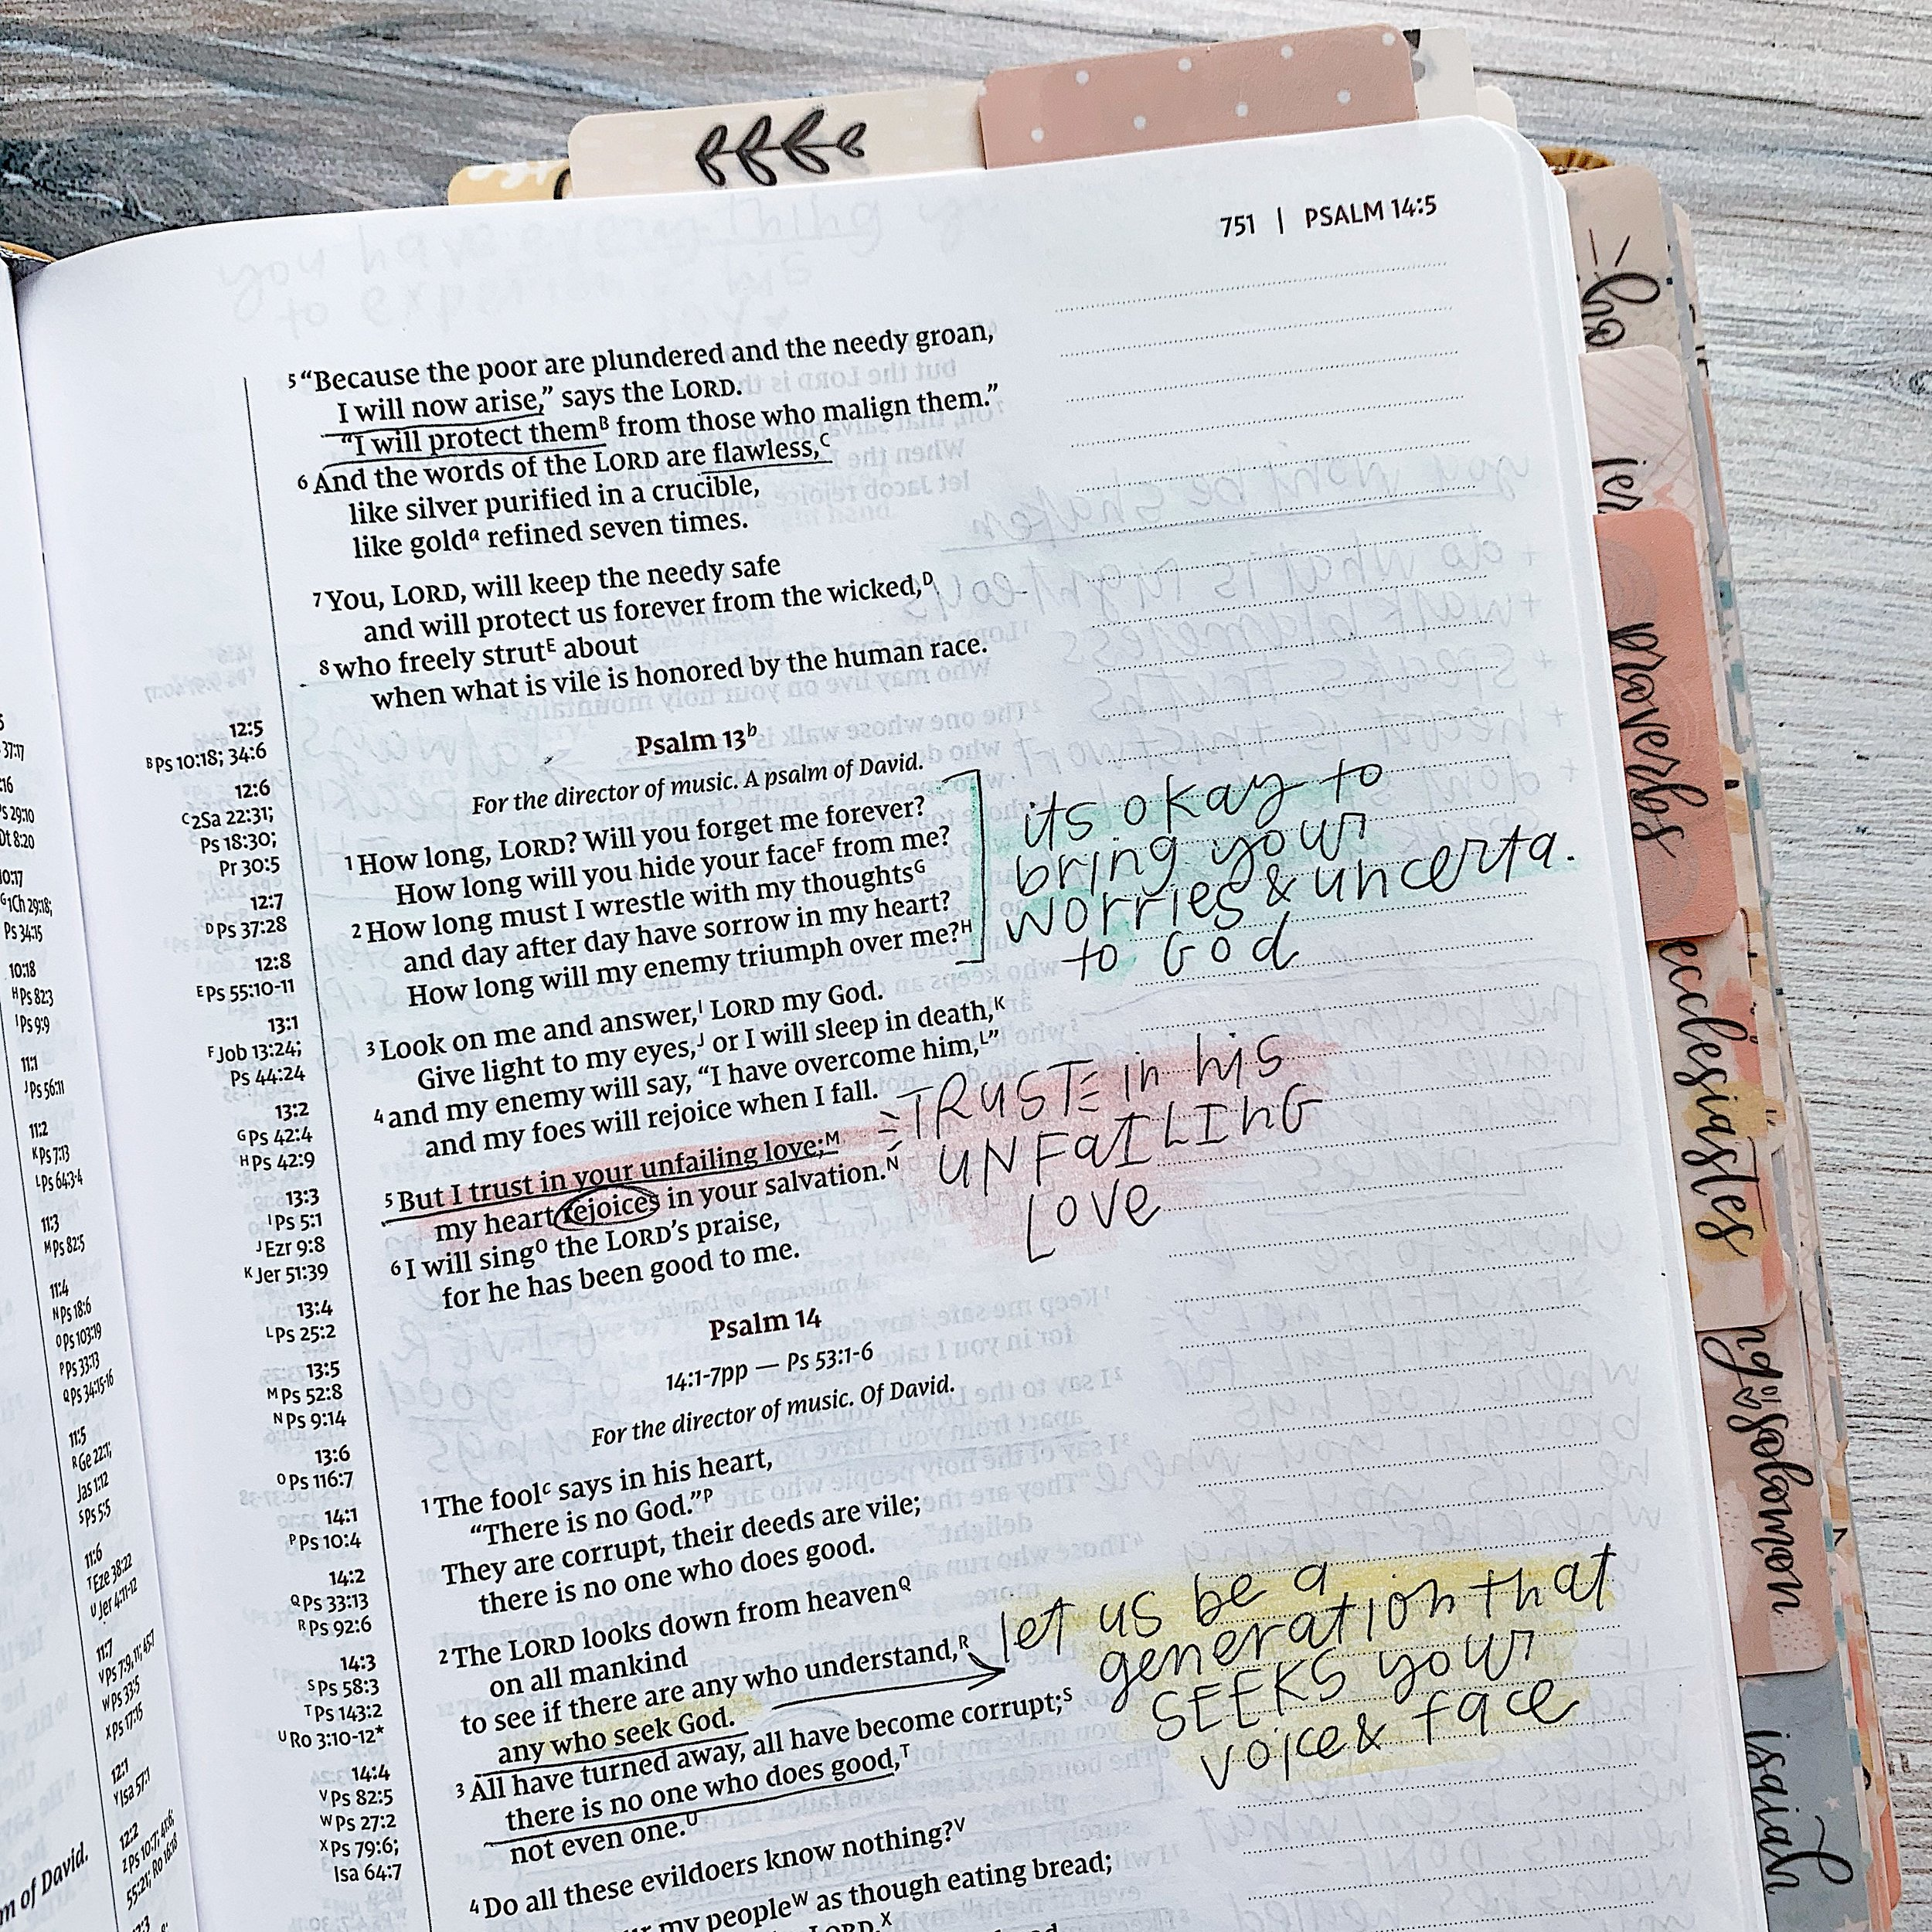 NIV JOURNAL THE WORD - Single Column Journaling Bible, 2 inch margins, Red Letter text for Jesus' words, Cross-References